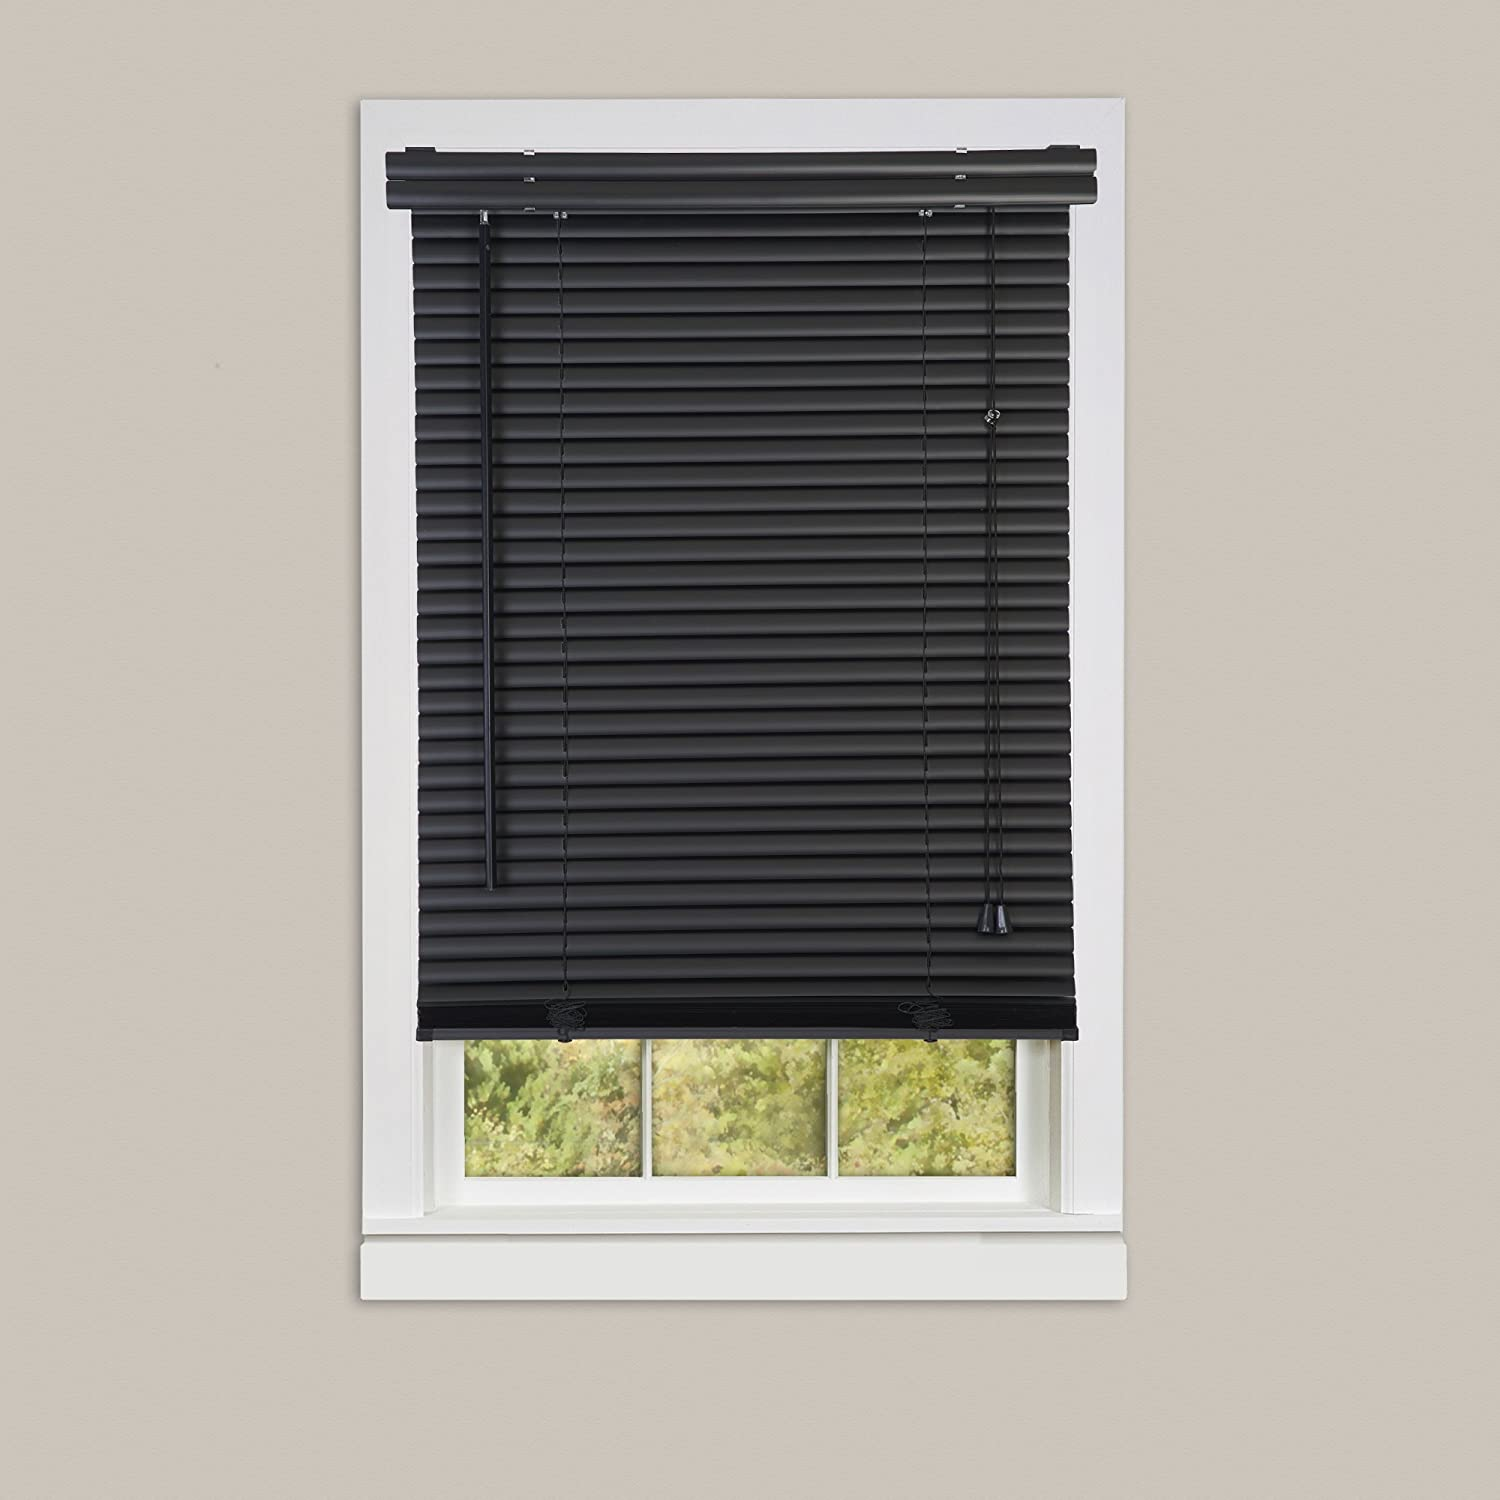 Achim Home Furnishings Morning Star 1-Inch Mini Blinds, 48 by 64-Inch, Black VY4864BK04